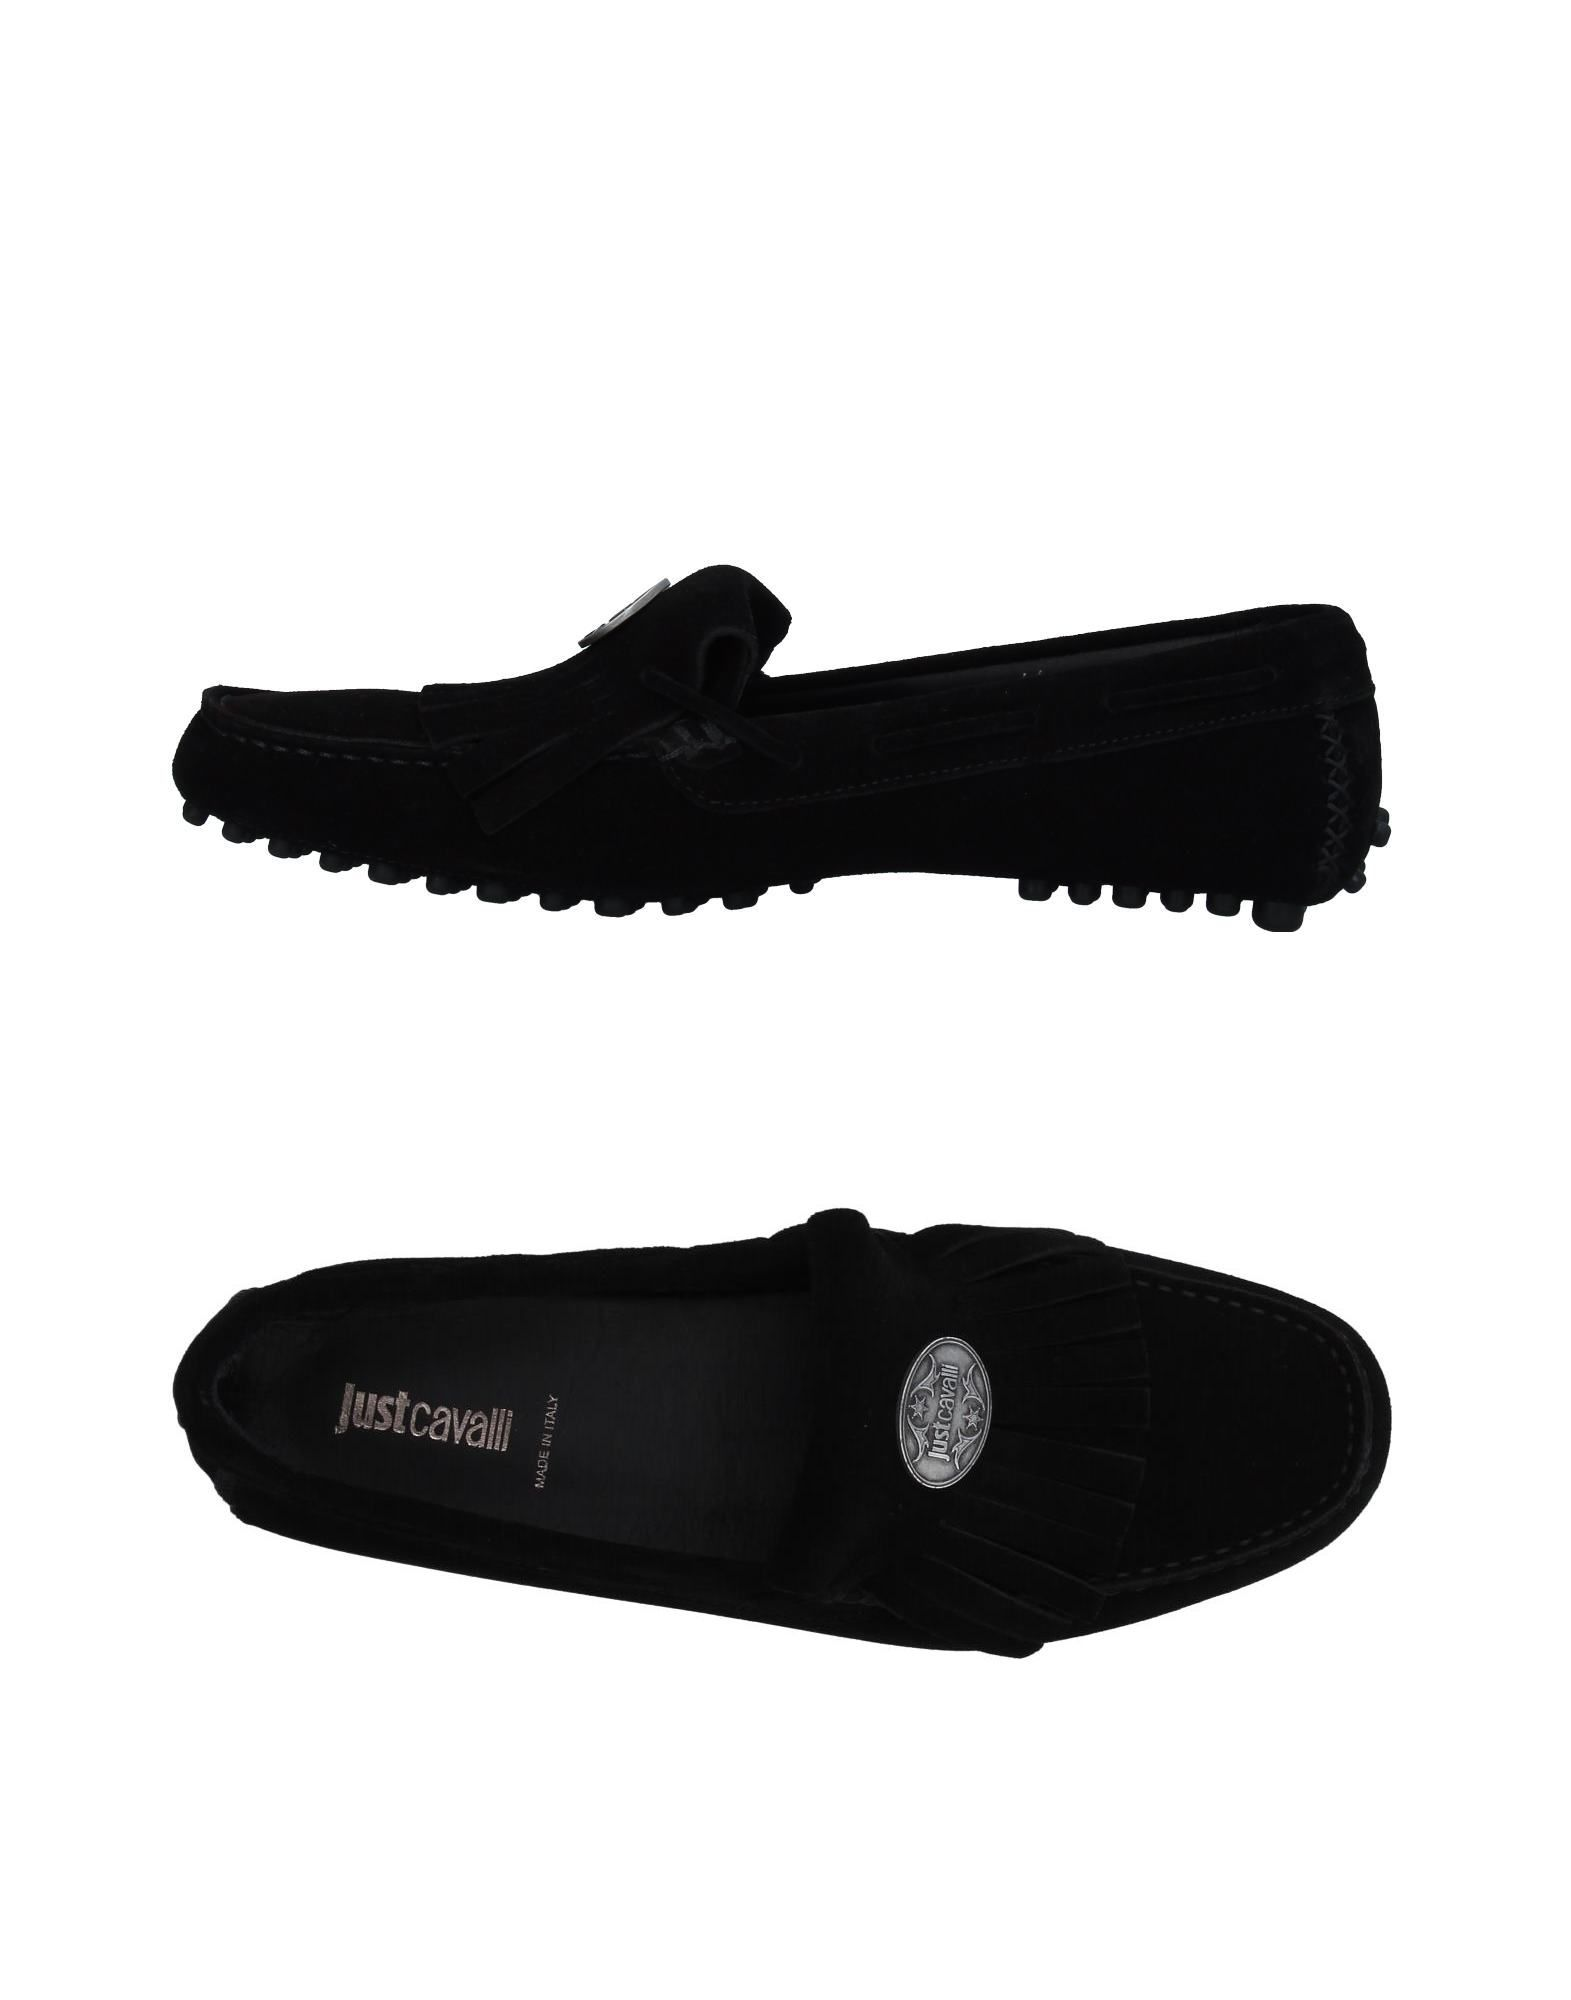 Just Cavalli Loafers Loafers Loafers - Men Just Cavalli Loafers online on  Australia - 11354062JX 371e03